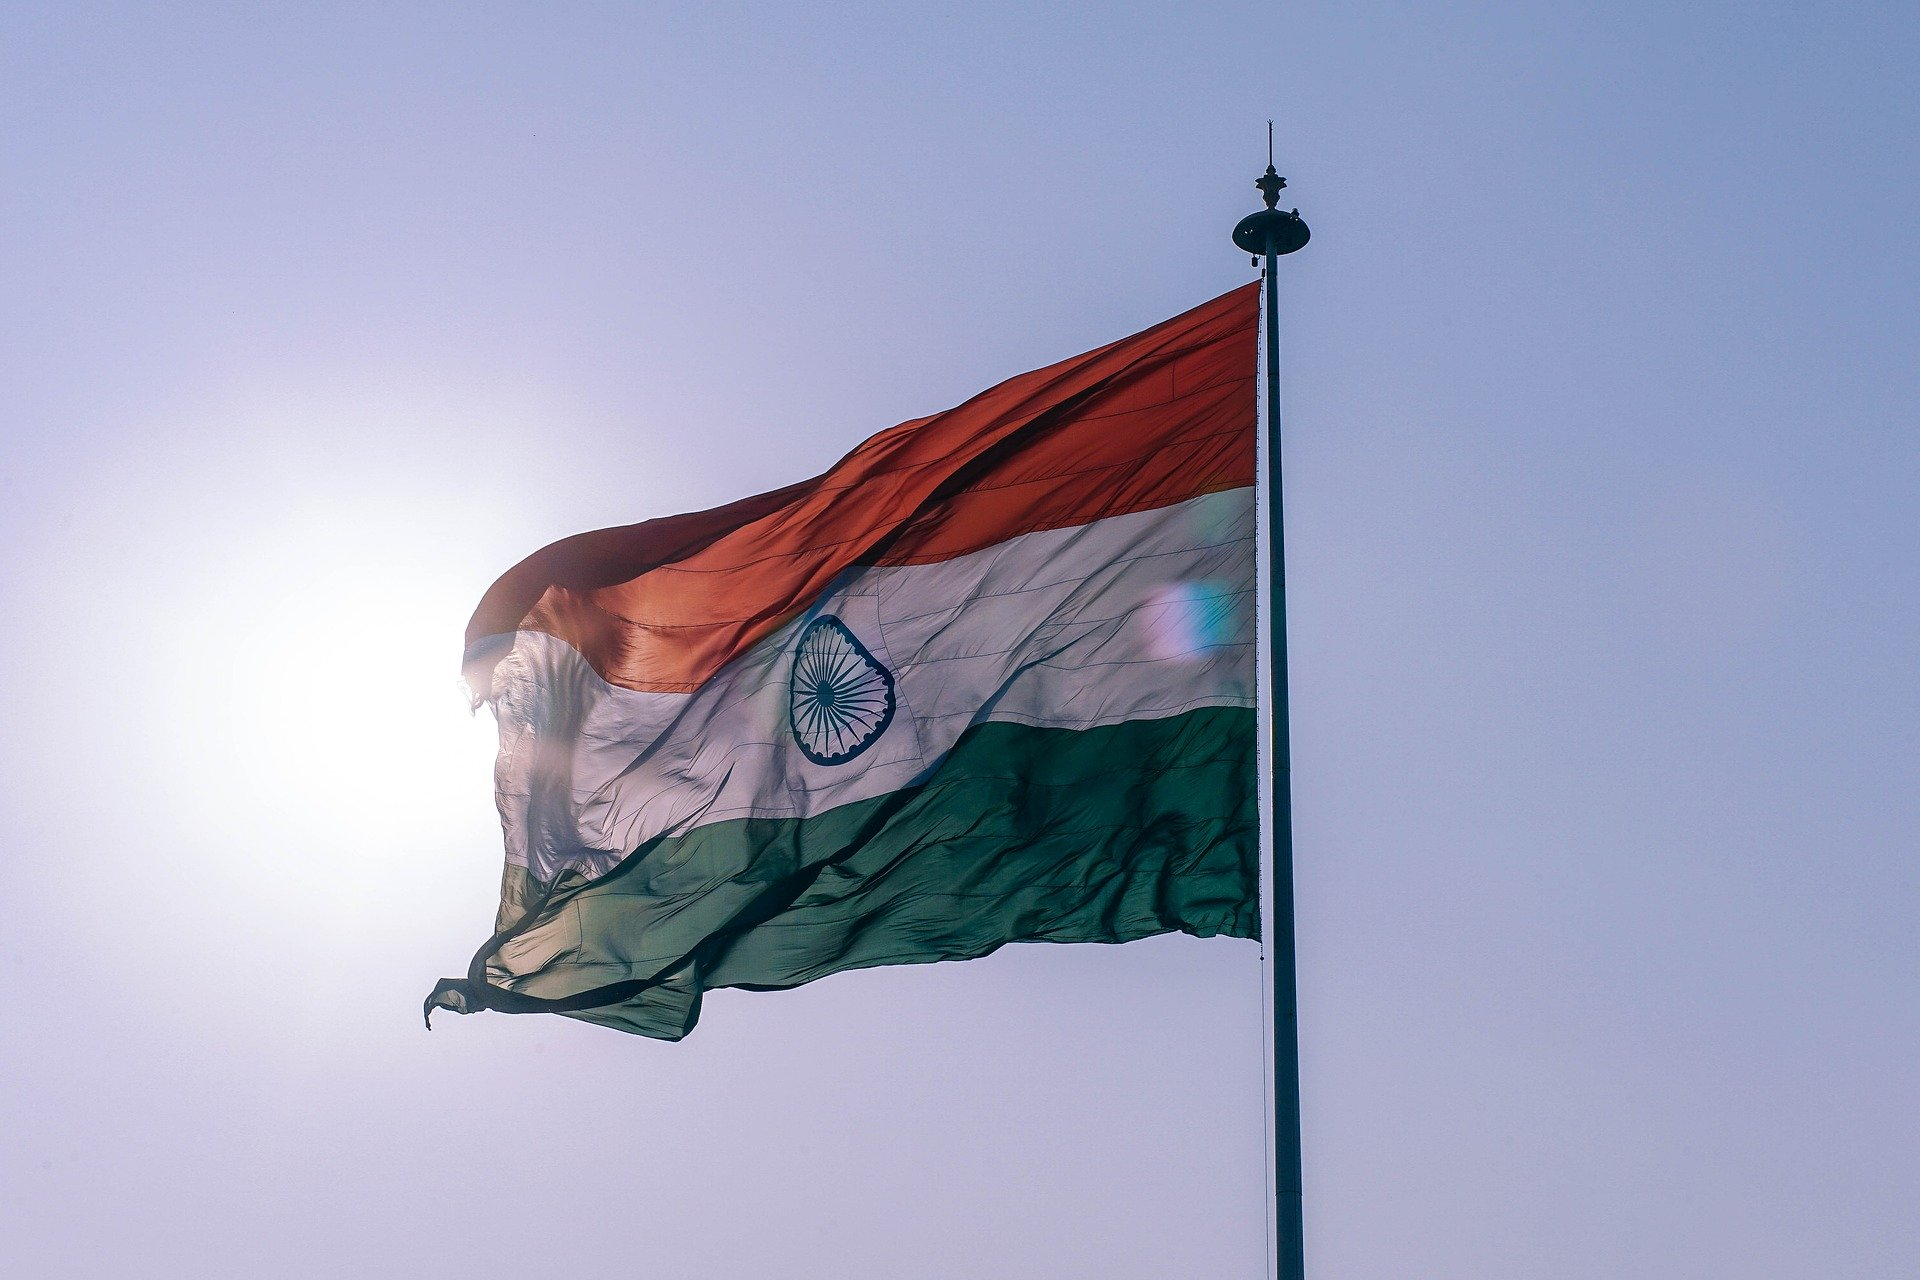 The concept of Nationalism in India Issues and Challenges